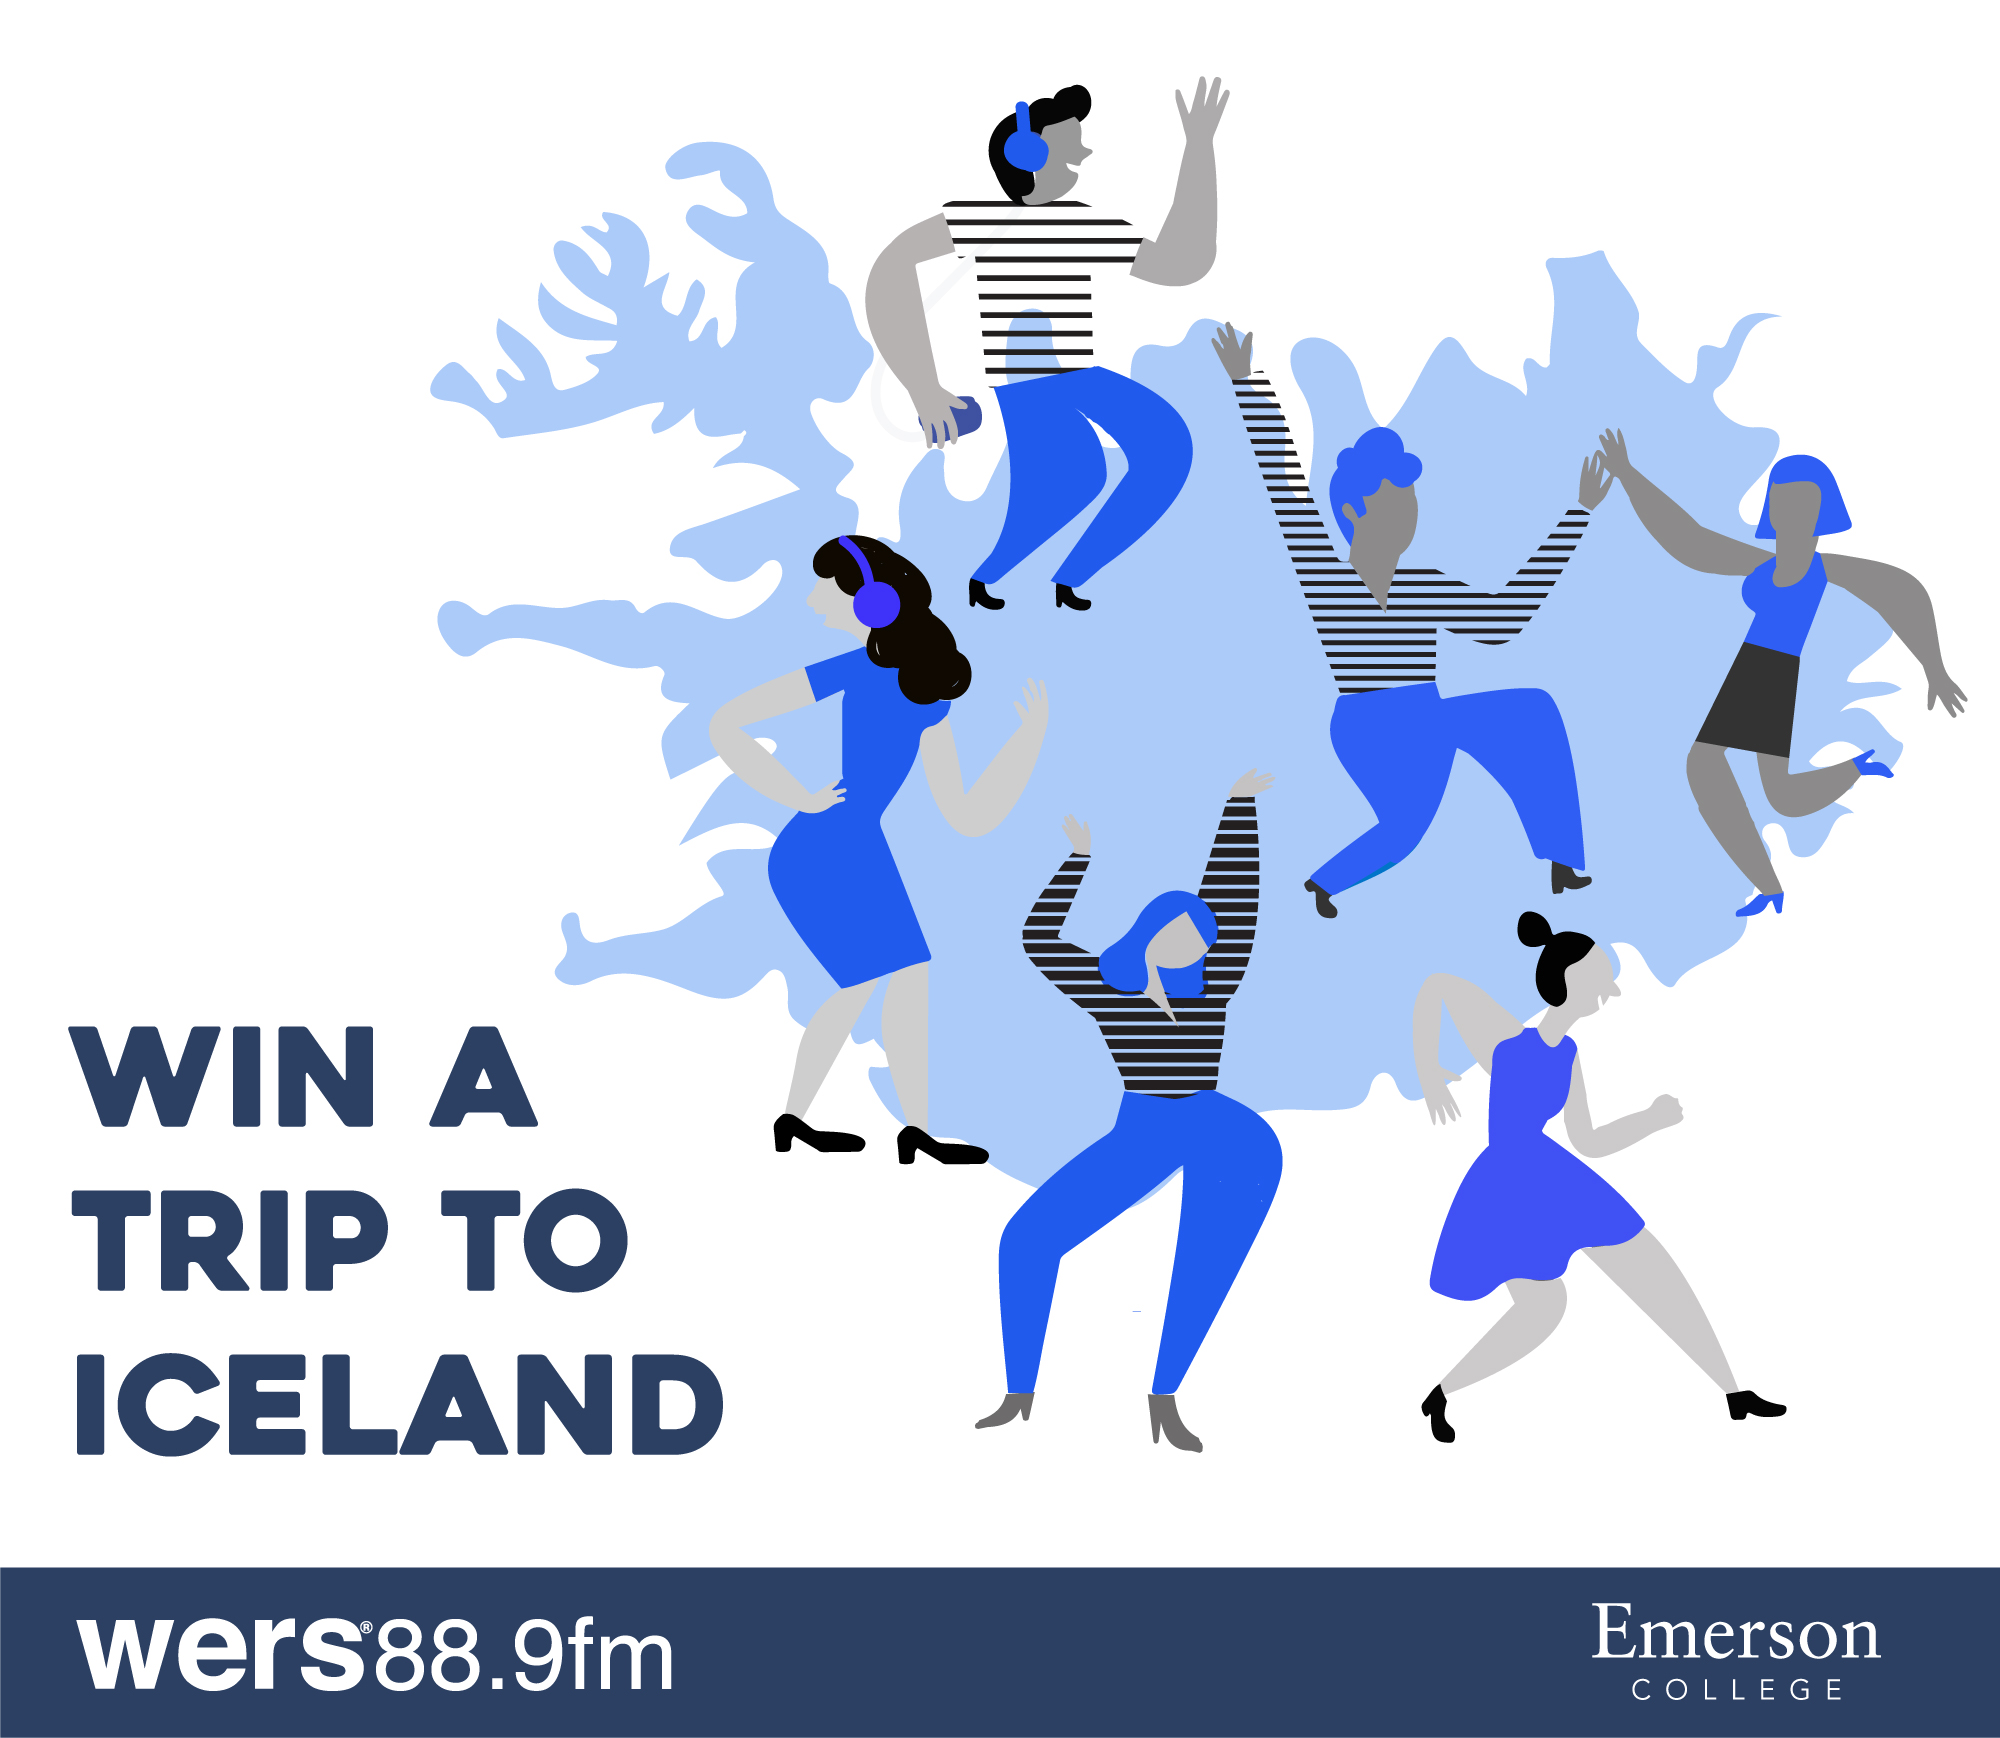 Win A Trip Trip to Iceland with WERS